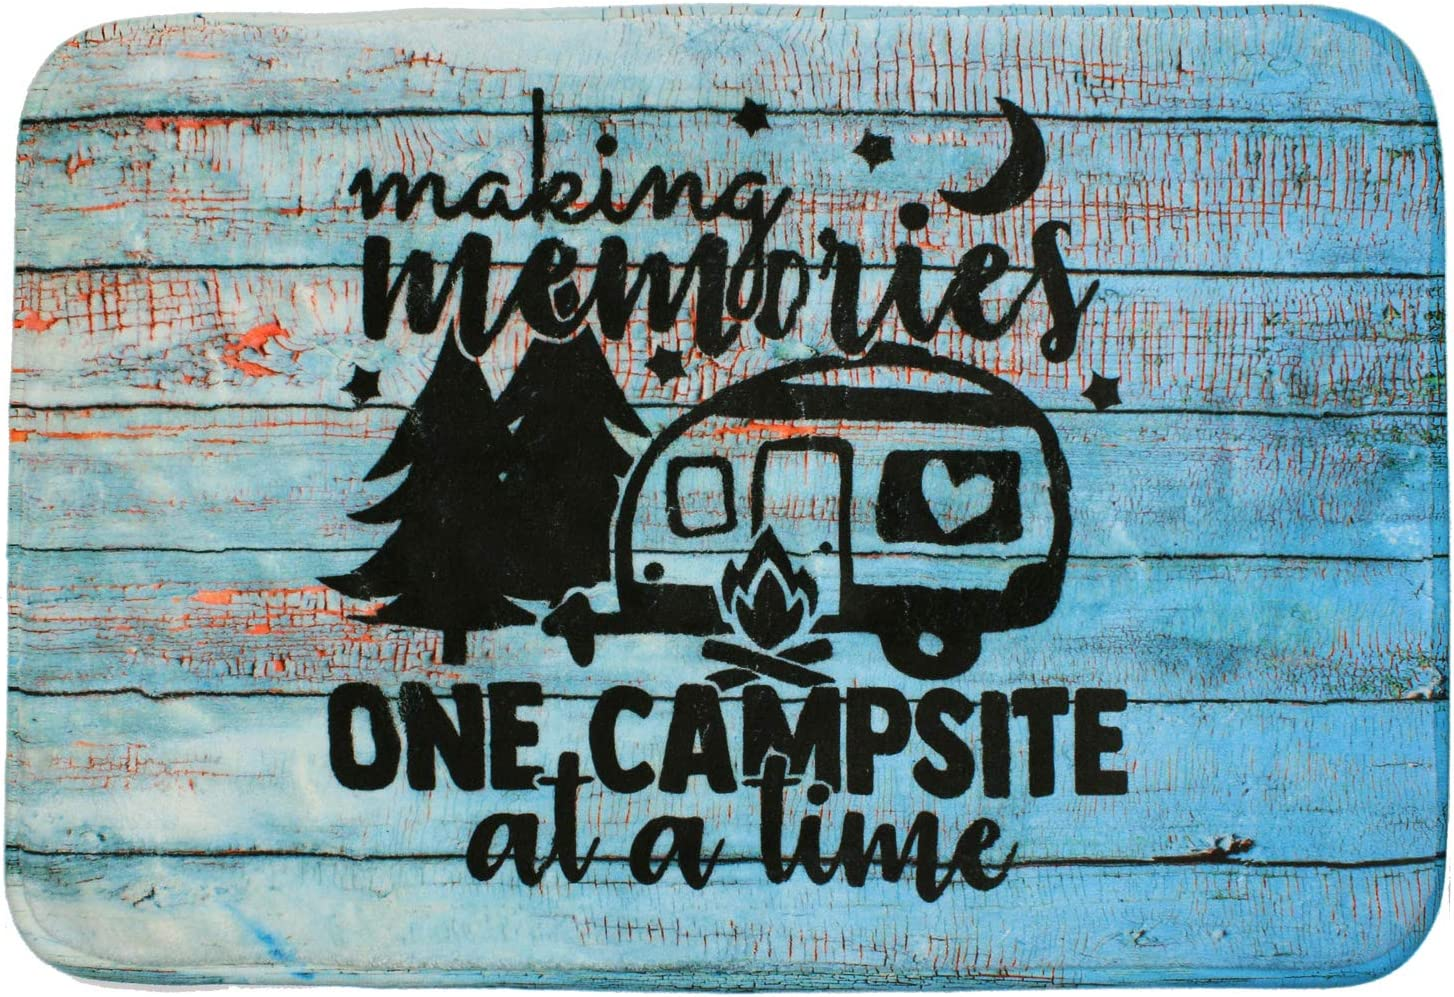 Camper Doormat for Indoor Decor   Cute Birthday Present for Camping Lovers who Travel   Funny RV Camp Gifts   Camping Accessories   One Campsite at A Time